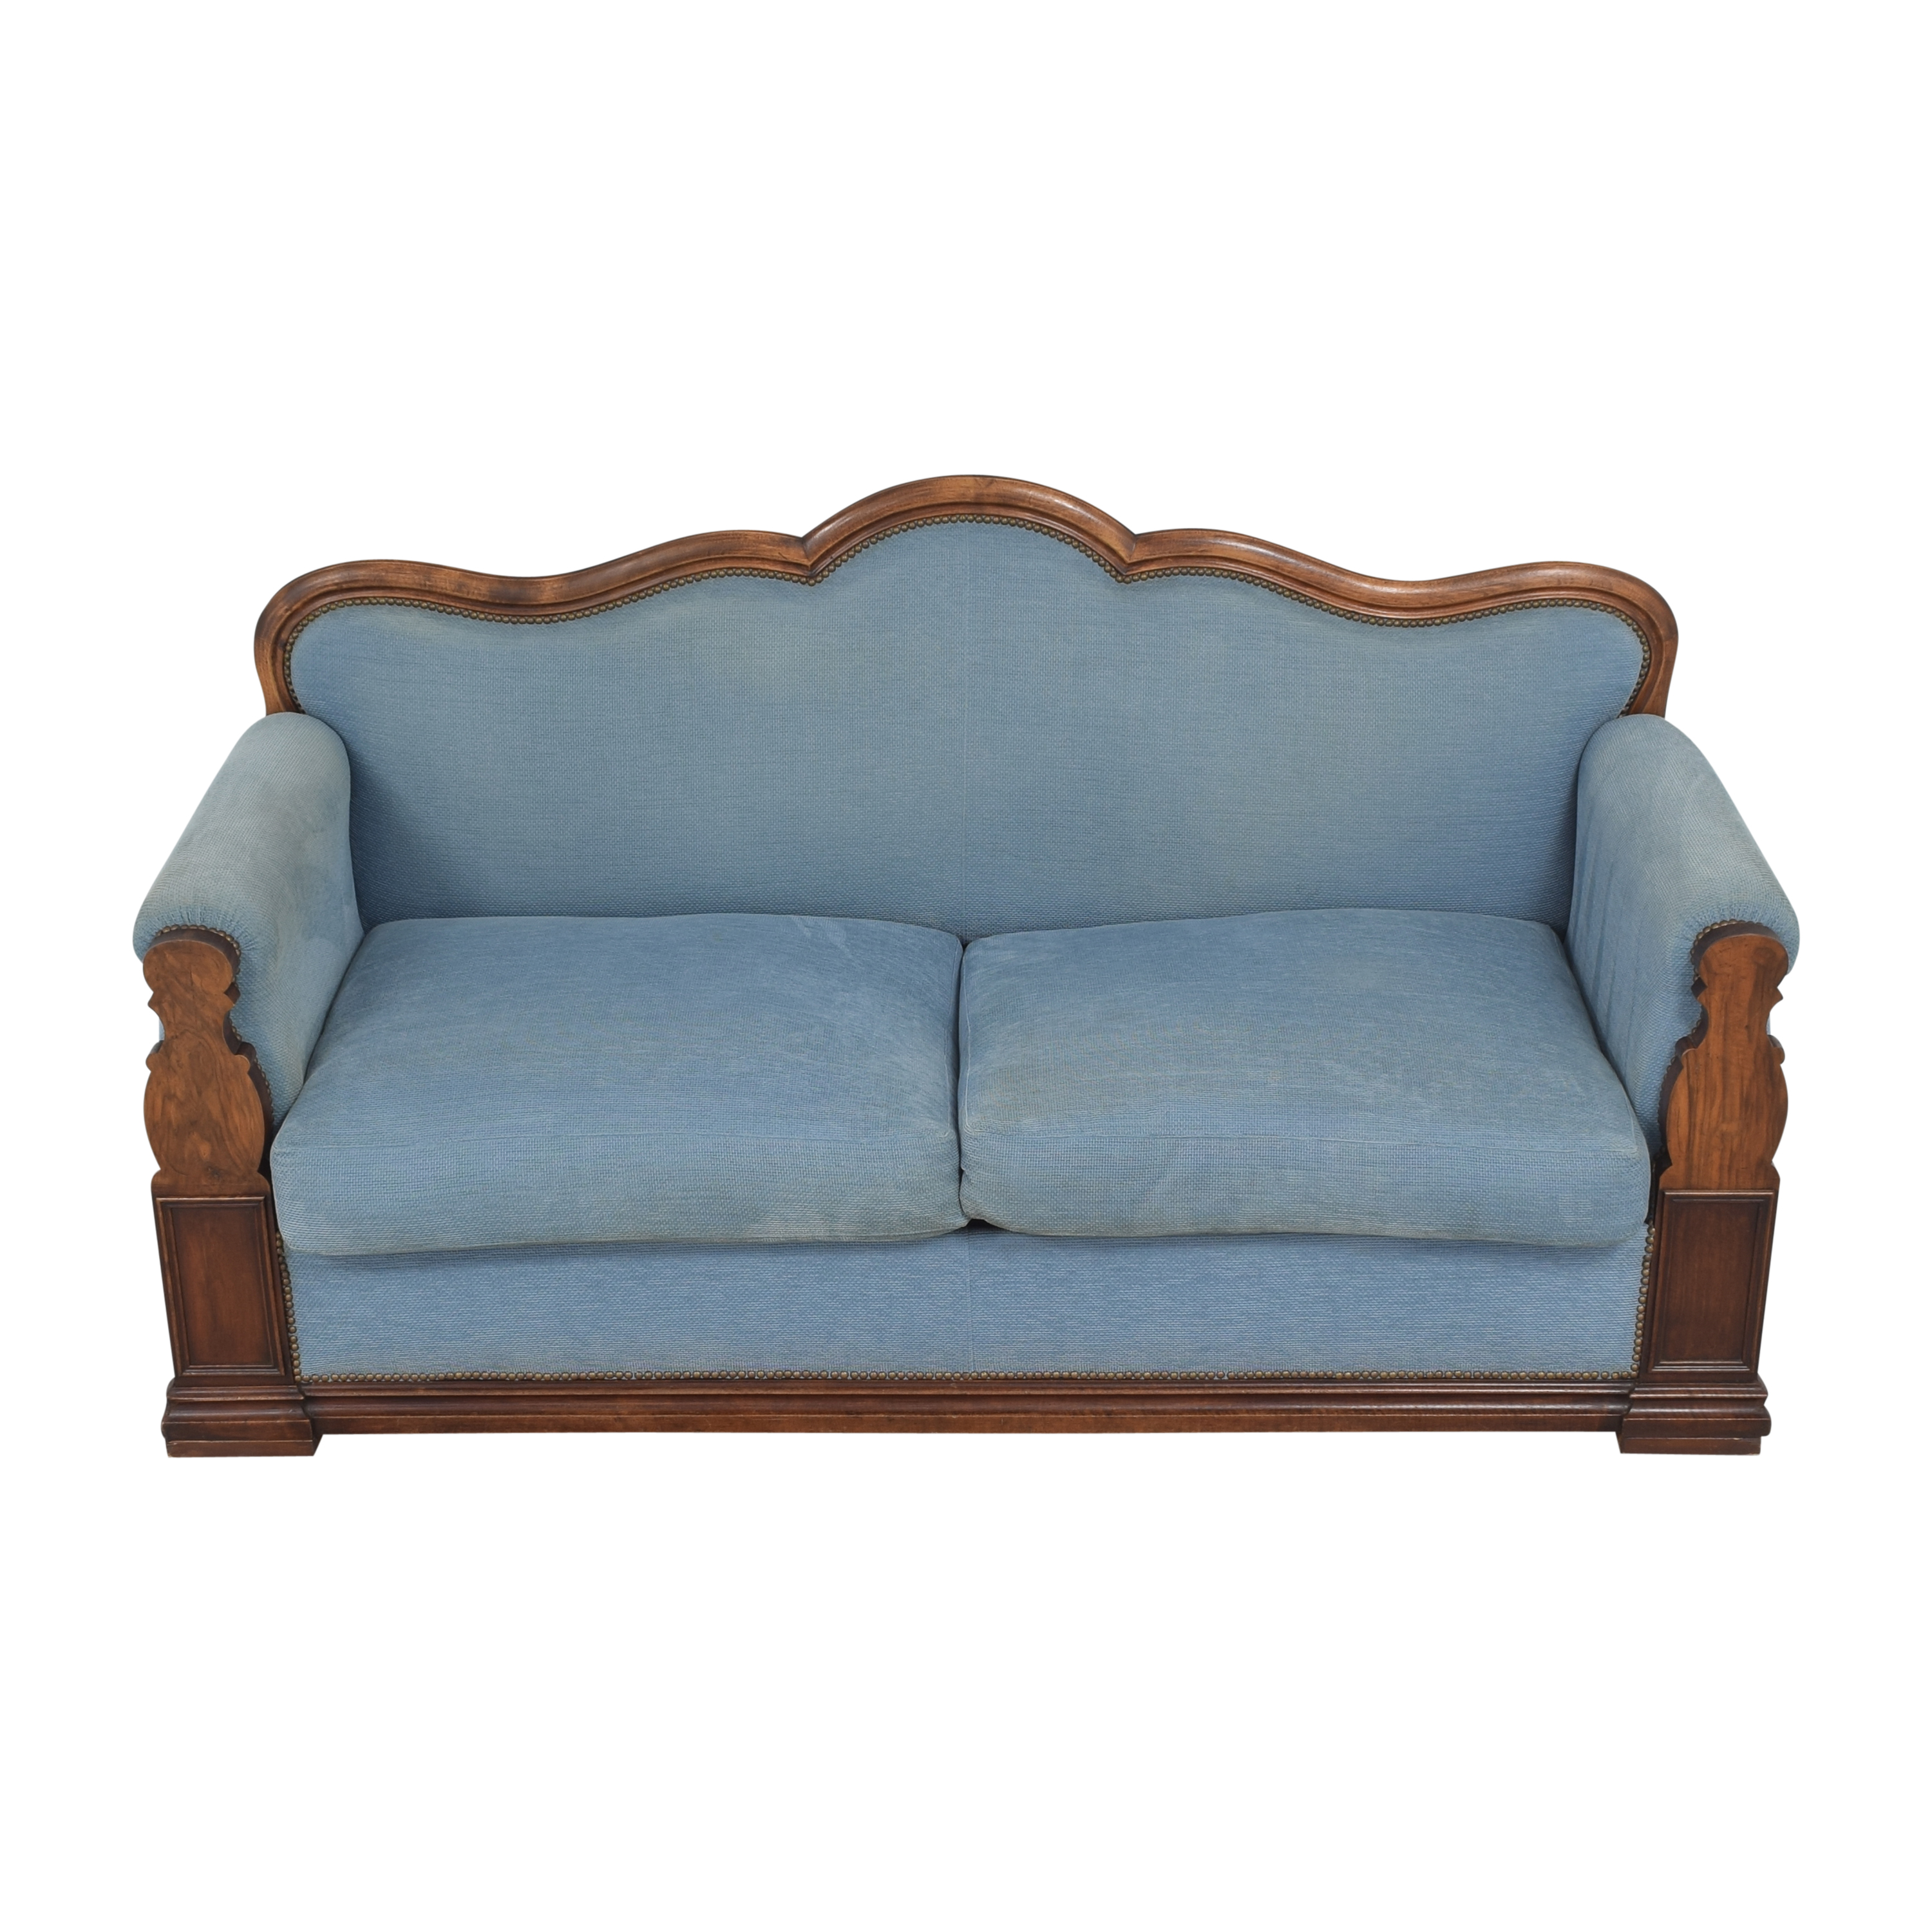 Louis Philippe-Style Two Cushion Sofa dimensions